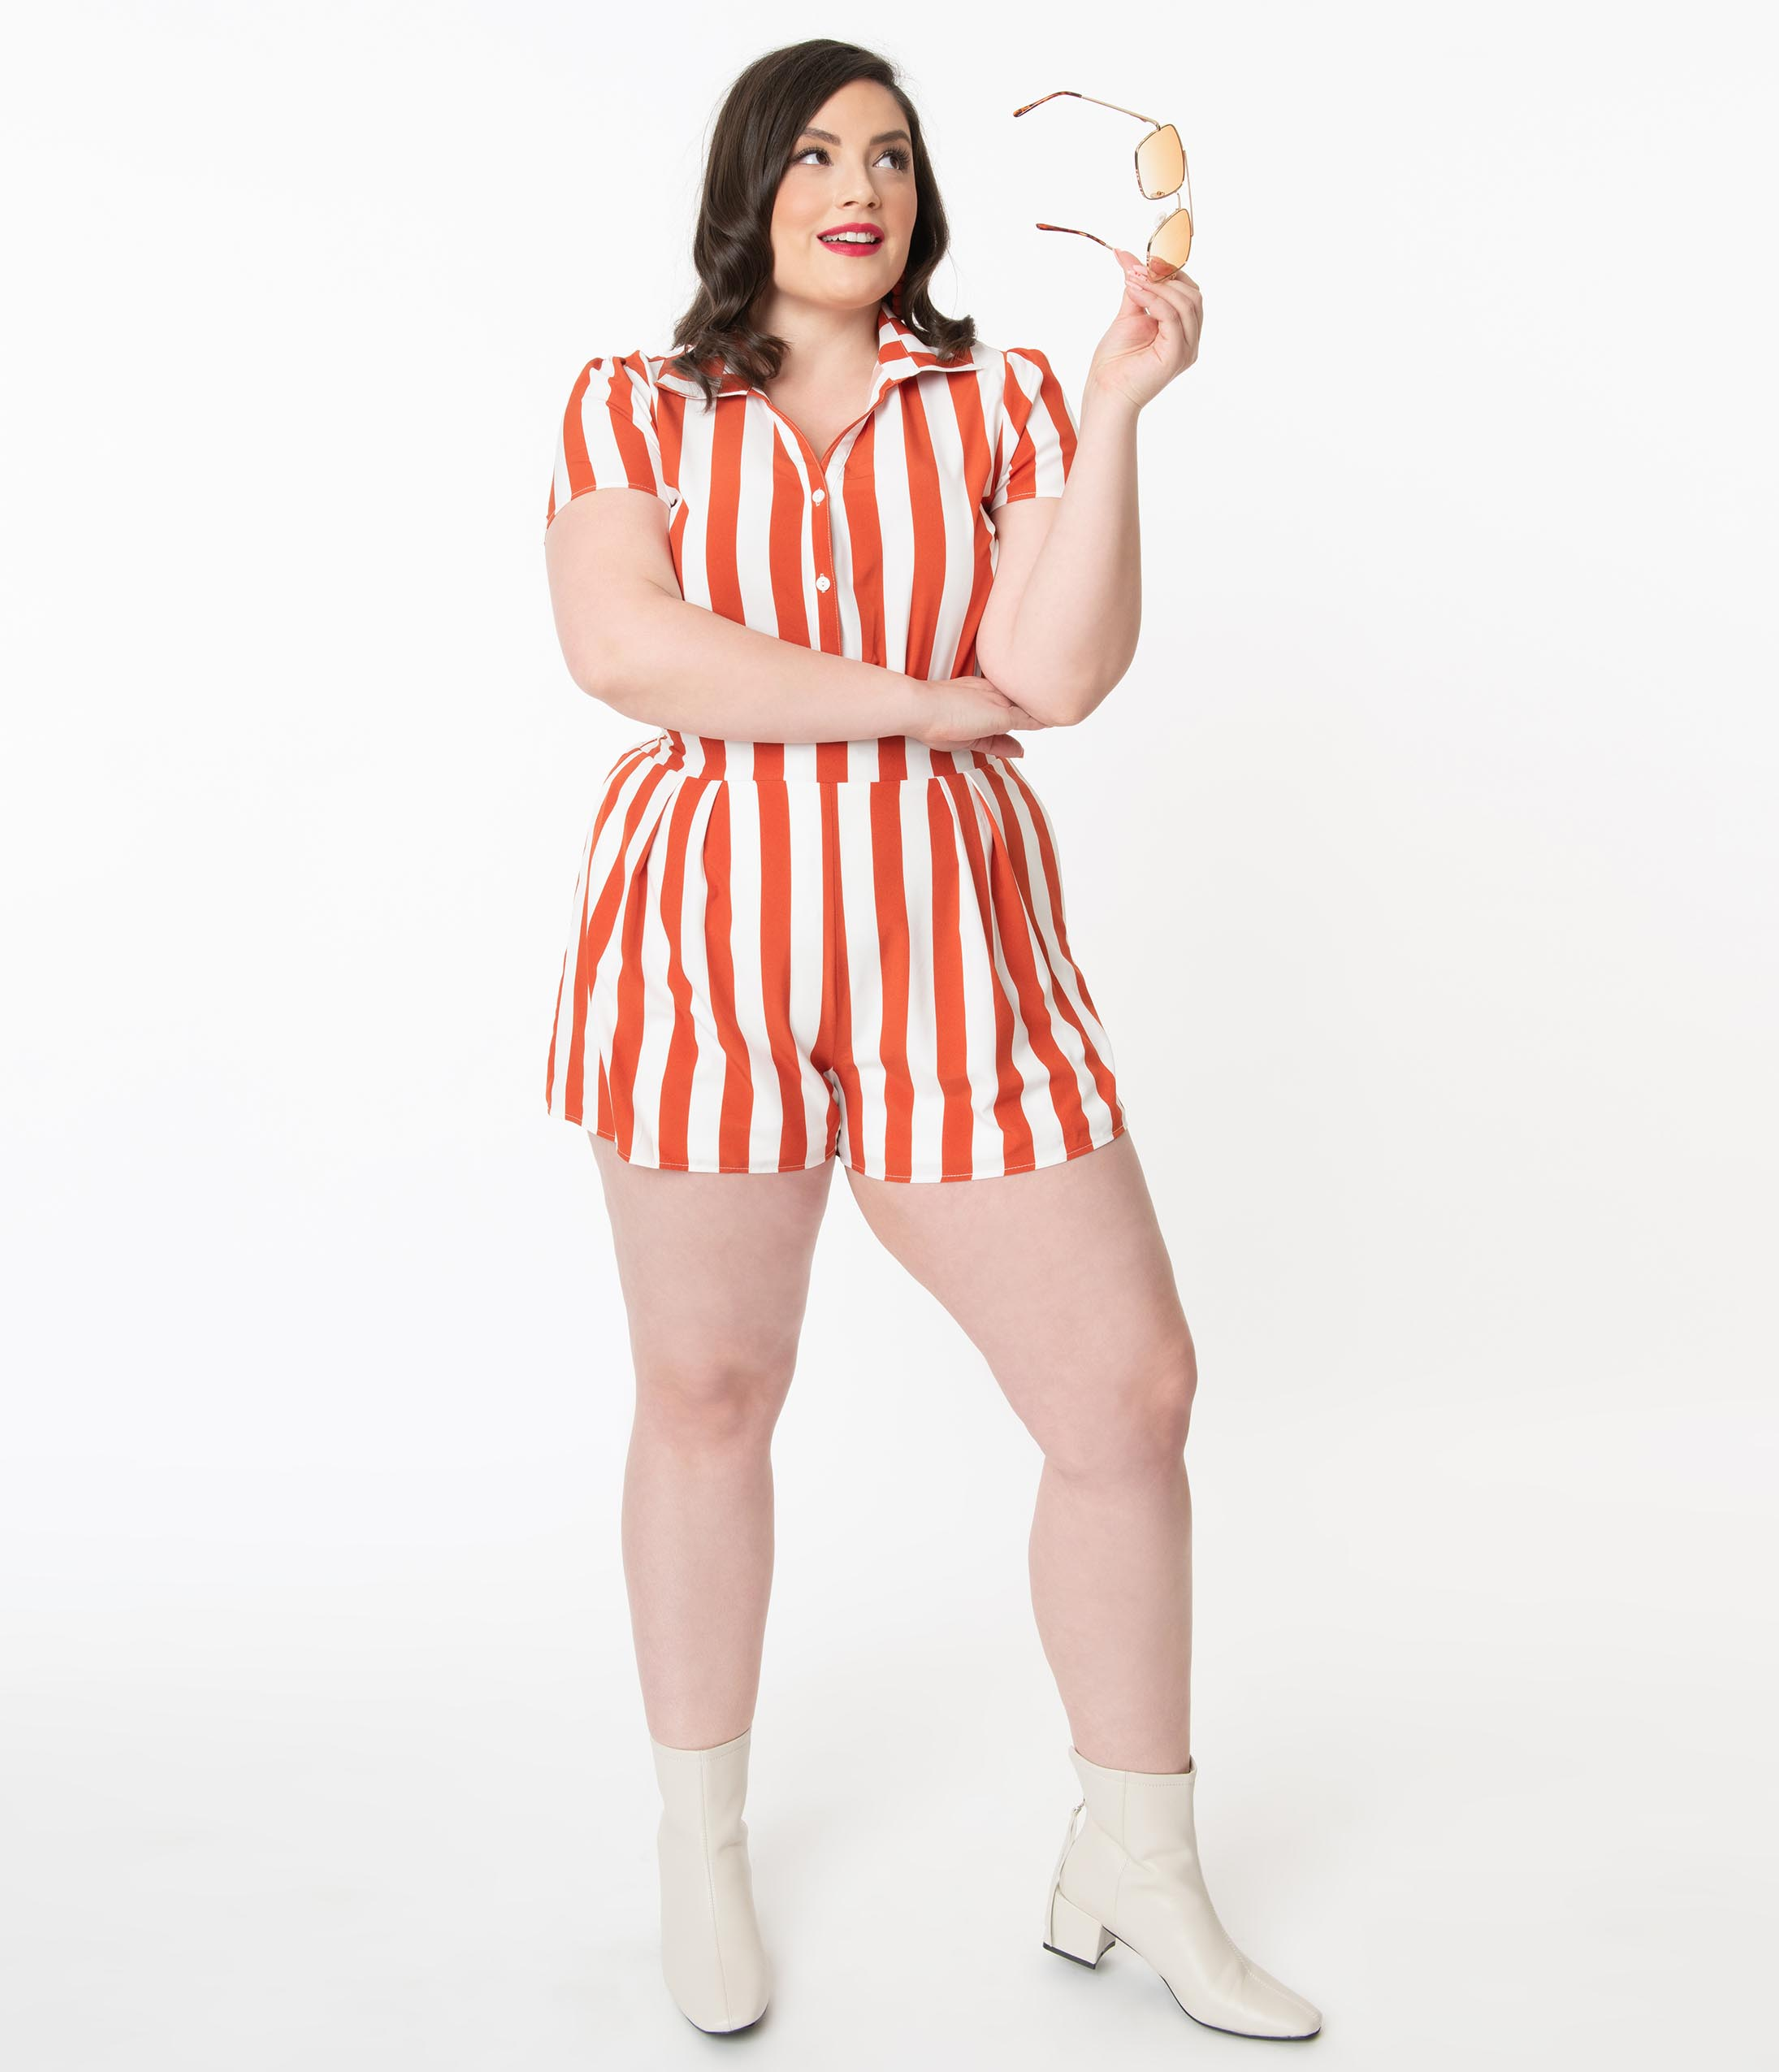 Vintage Rompers, Playsuits | Retro, Pin Up, Rockabilly Playsuits Plus Size Retro Style Rust  Ivory Stripe Romper $48.00 AT vintagedancer.com